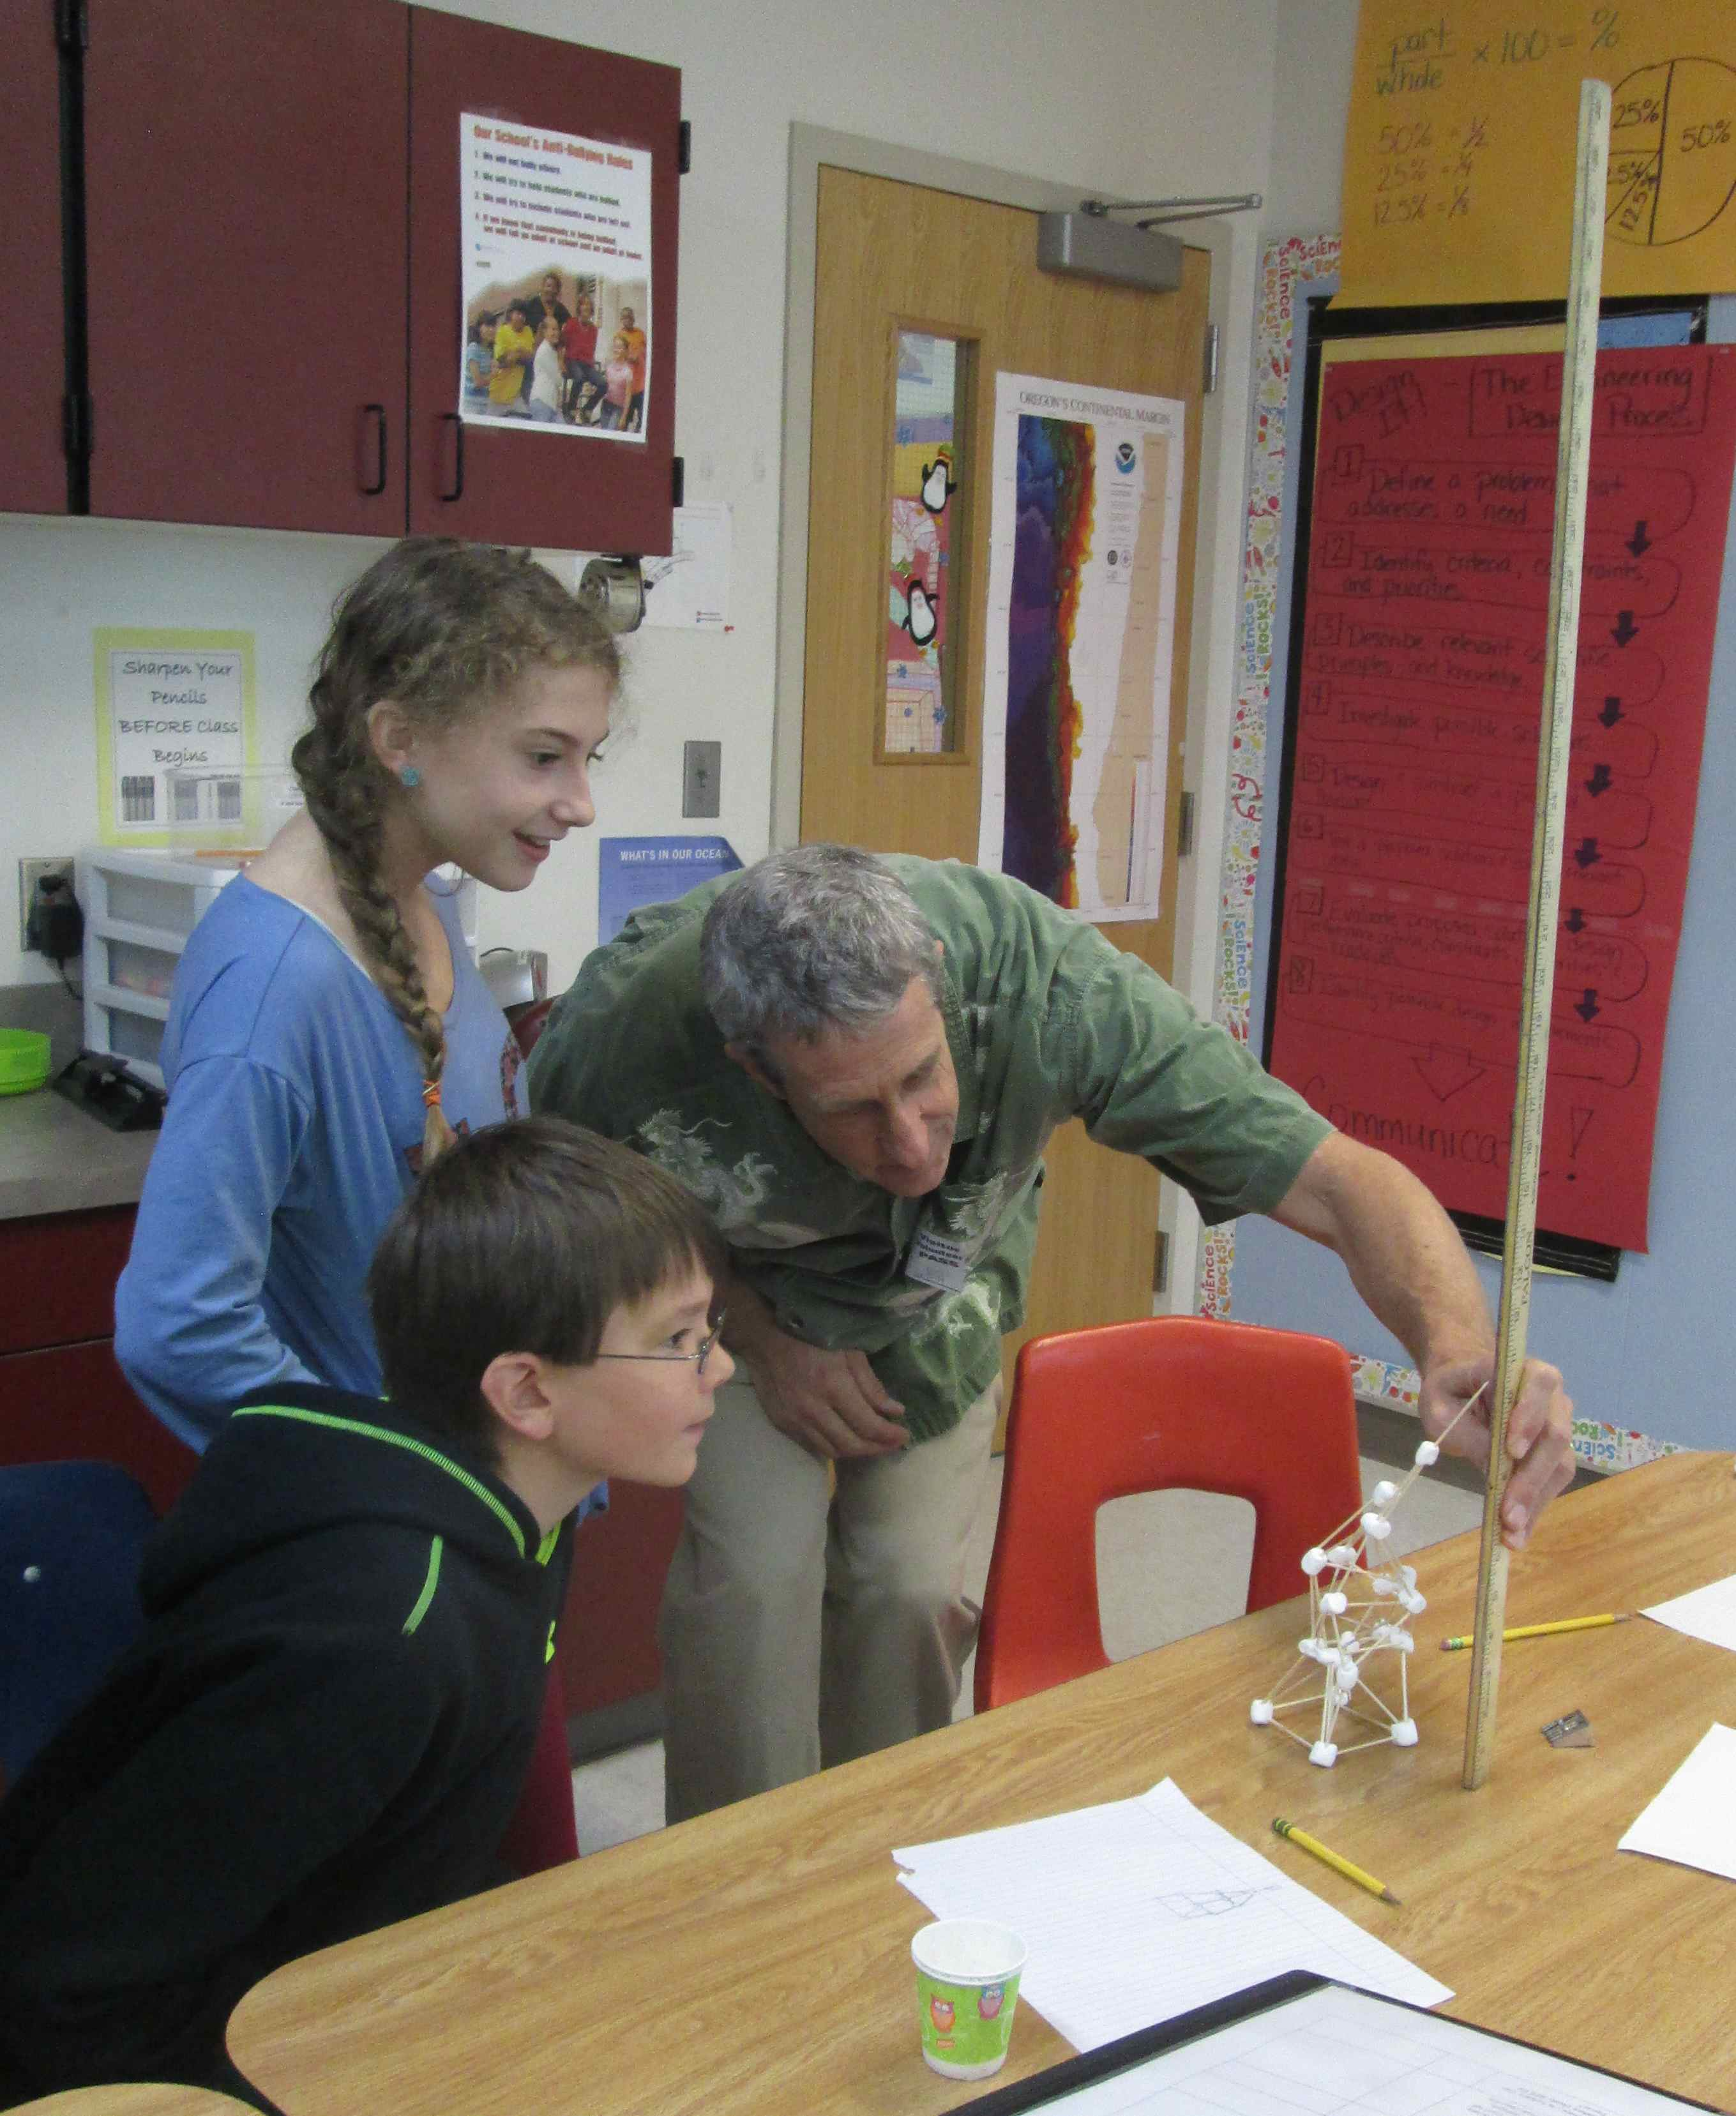 A science fair mentor helps 6th graders evaluate their engineering design